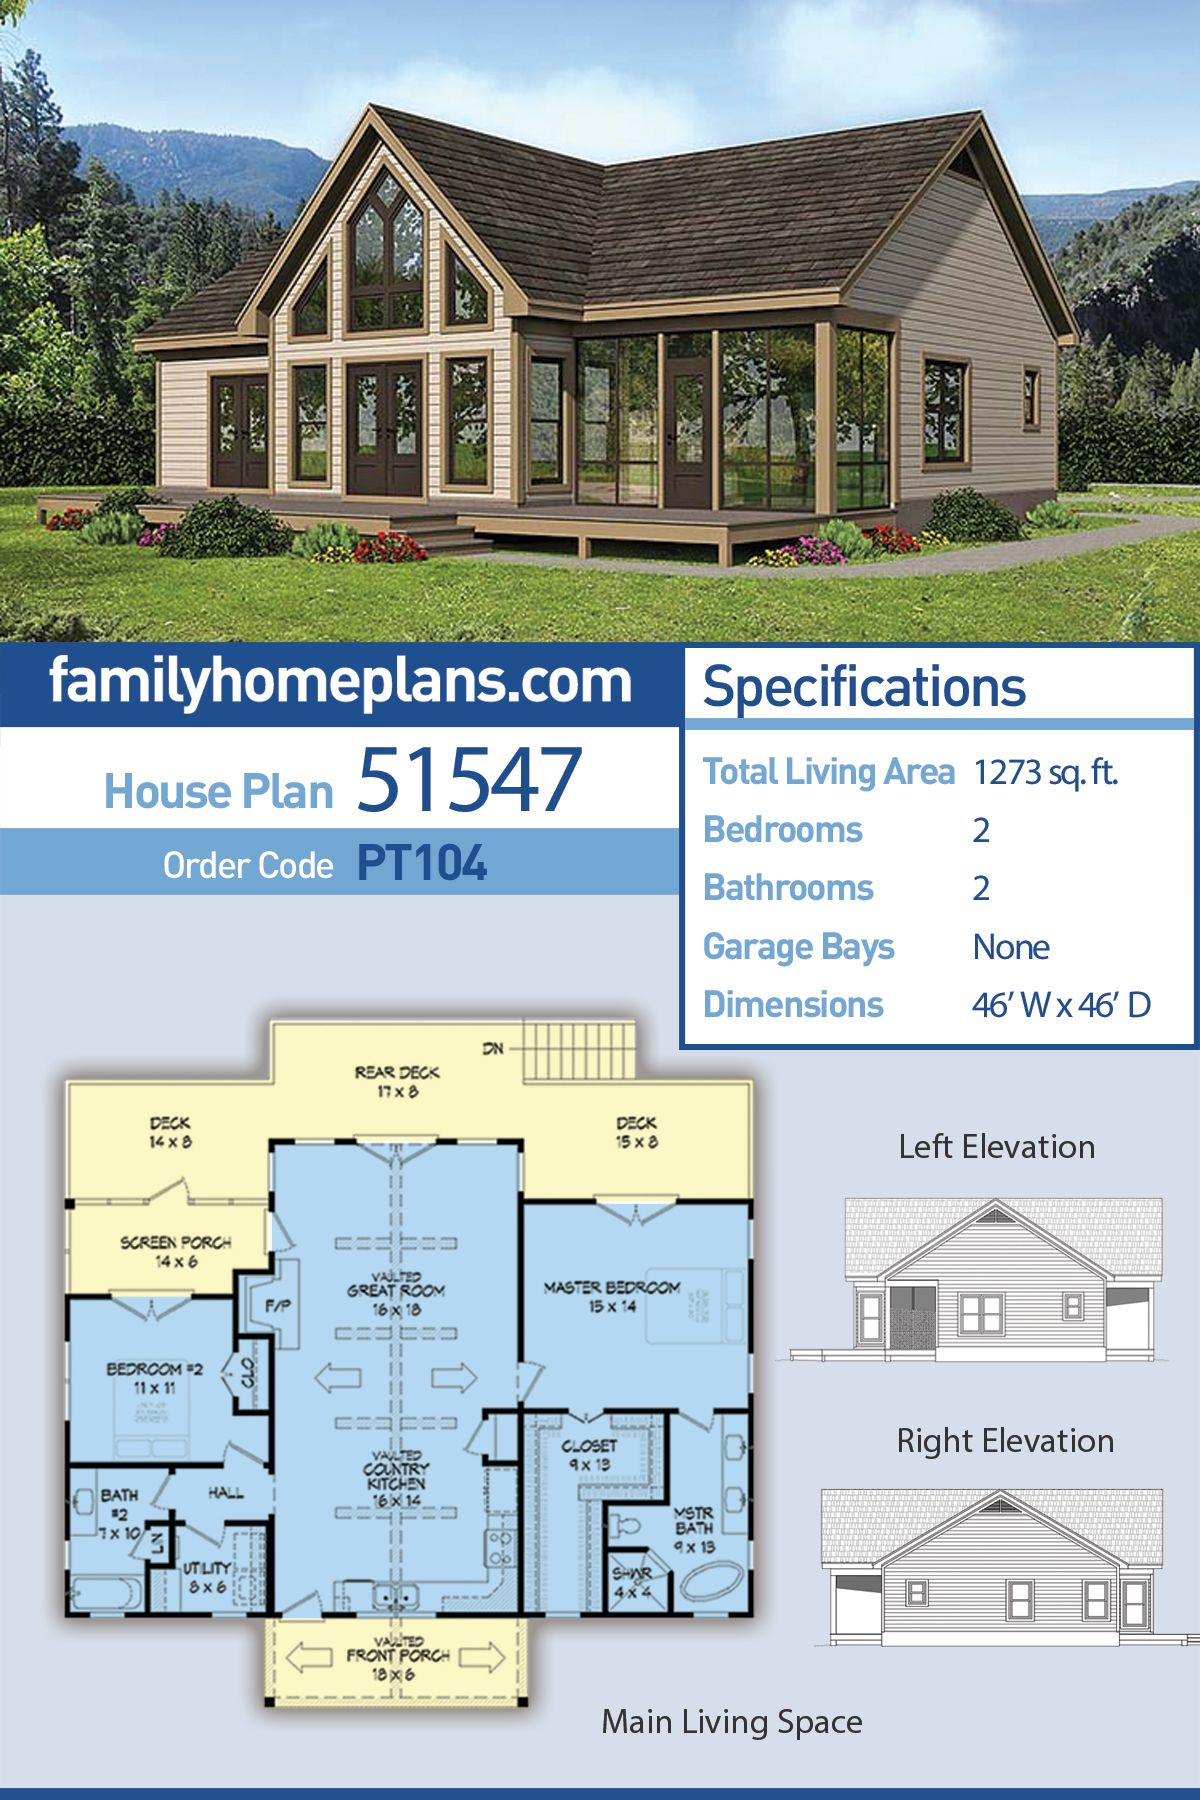 Traditional Ranch House Plan With A View Family Home Plan Small House Plans Family House Plans Ranch House Plans Lake House Plans